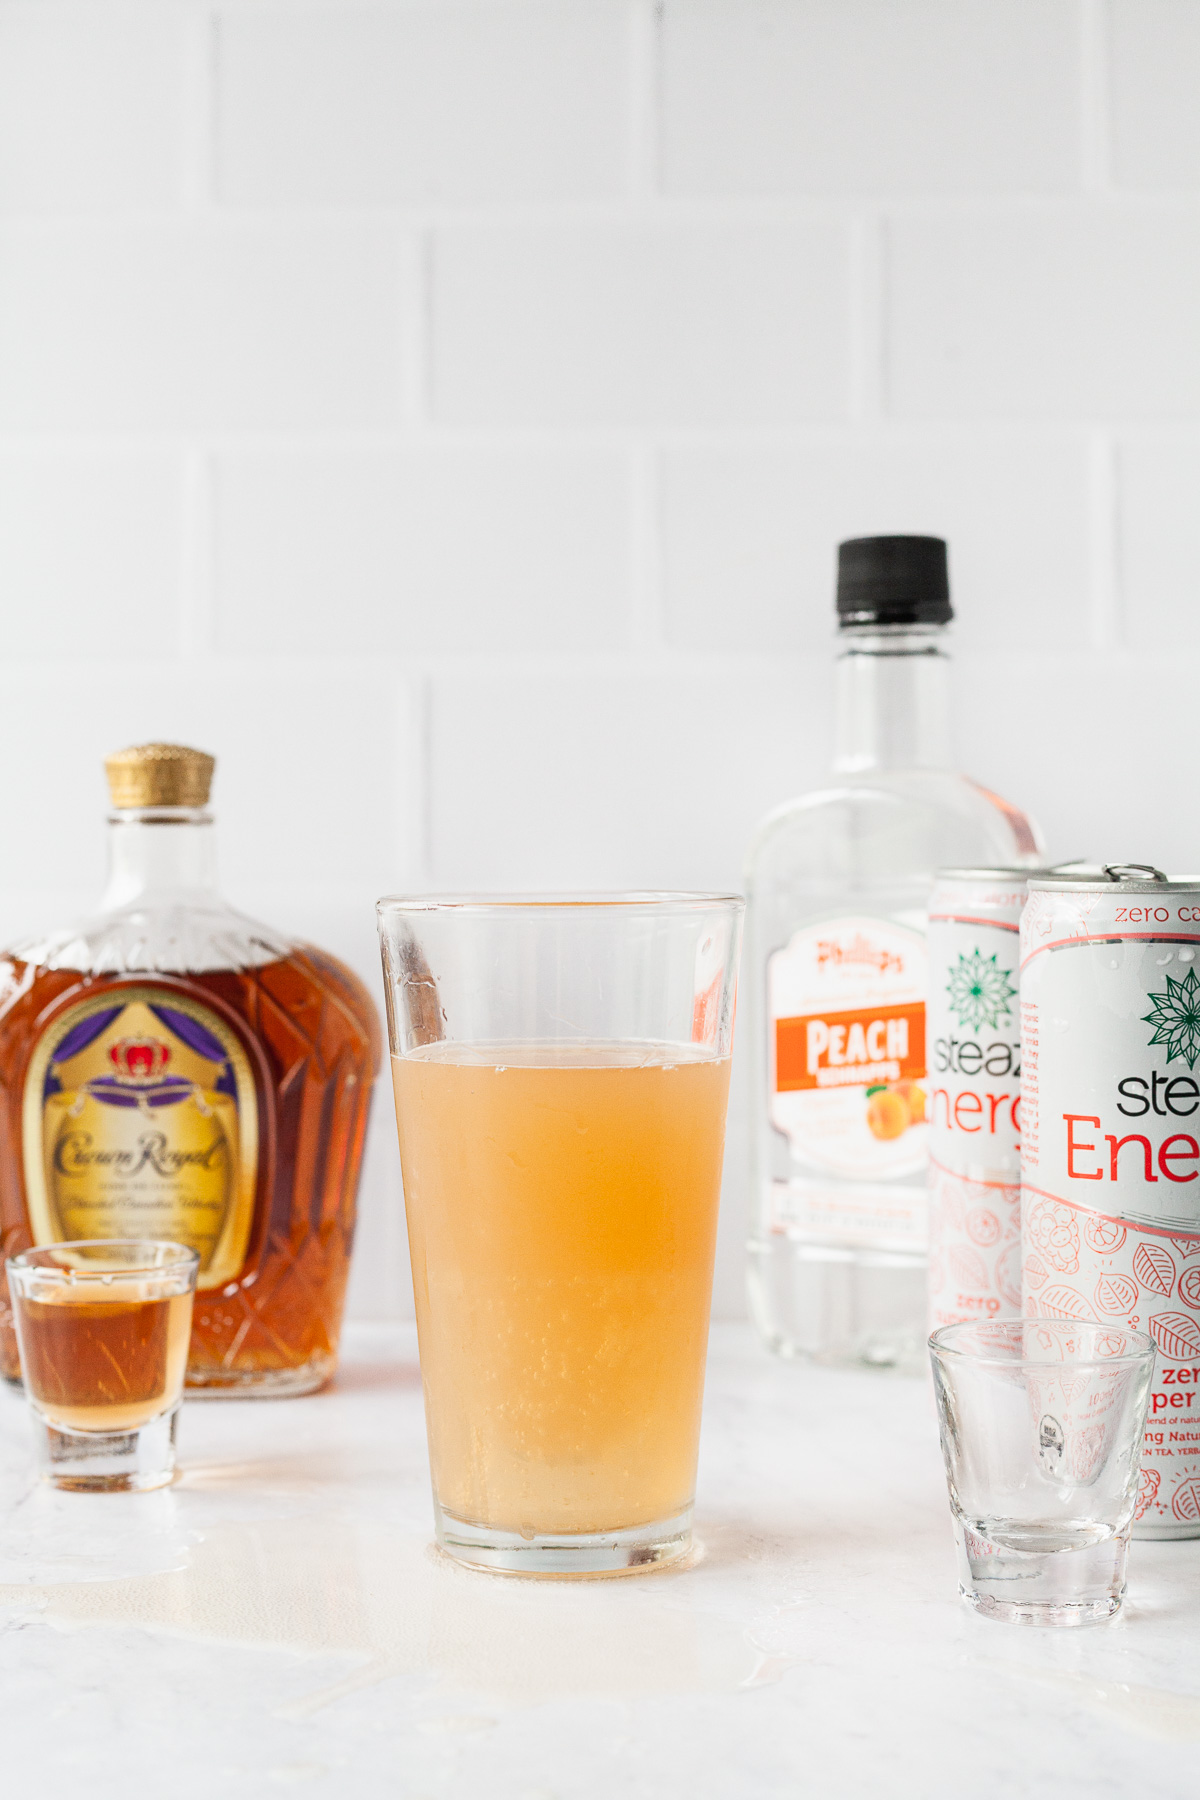 a yellow orange drink of a vegas bomb in a tall pint glass on a white counter with other liquors and shot glasses